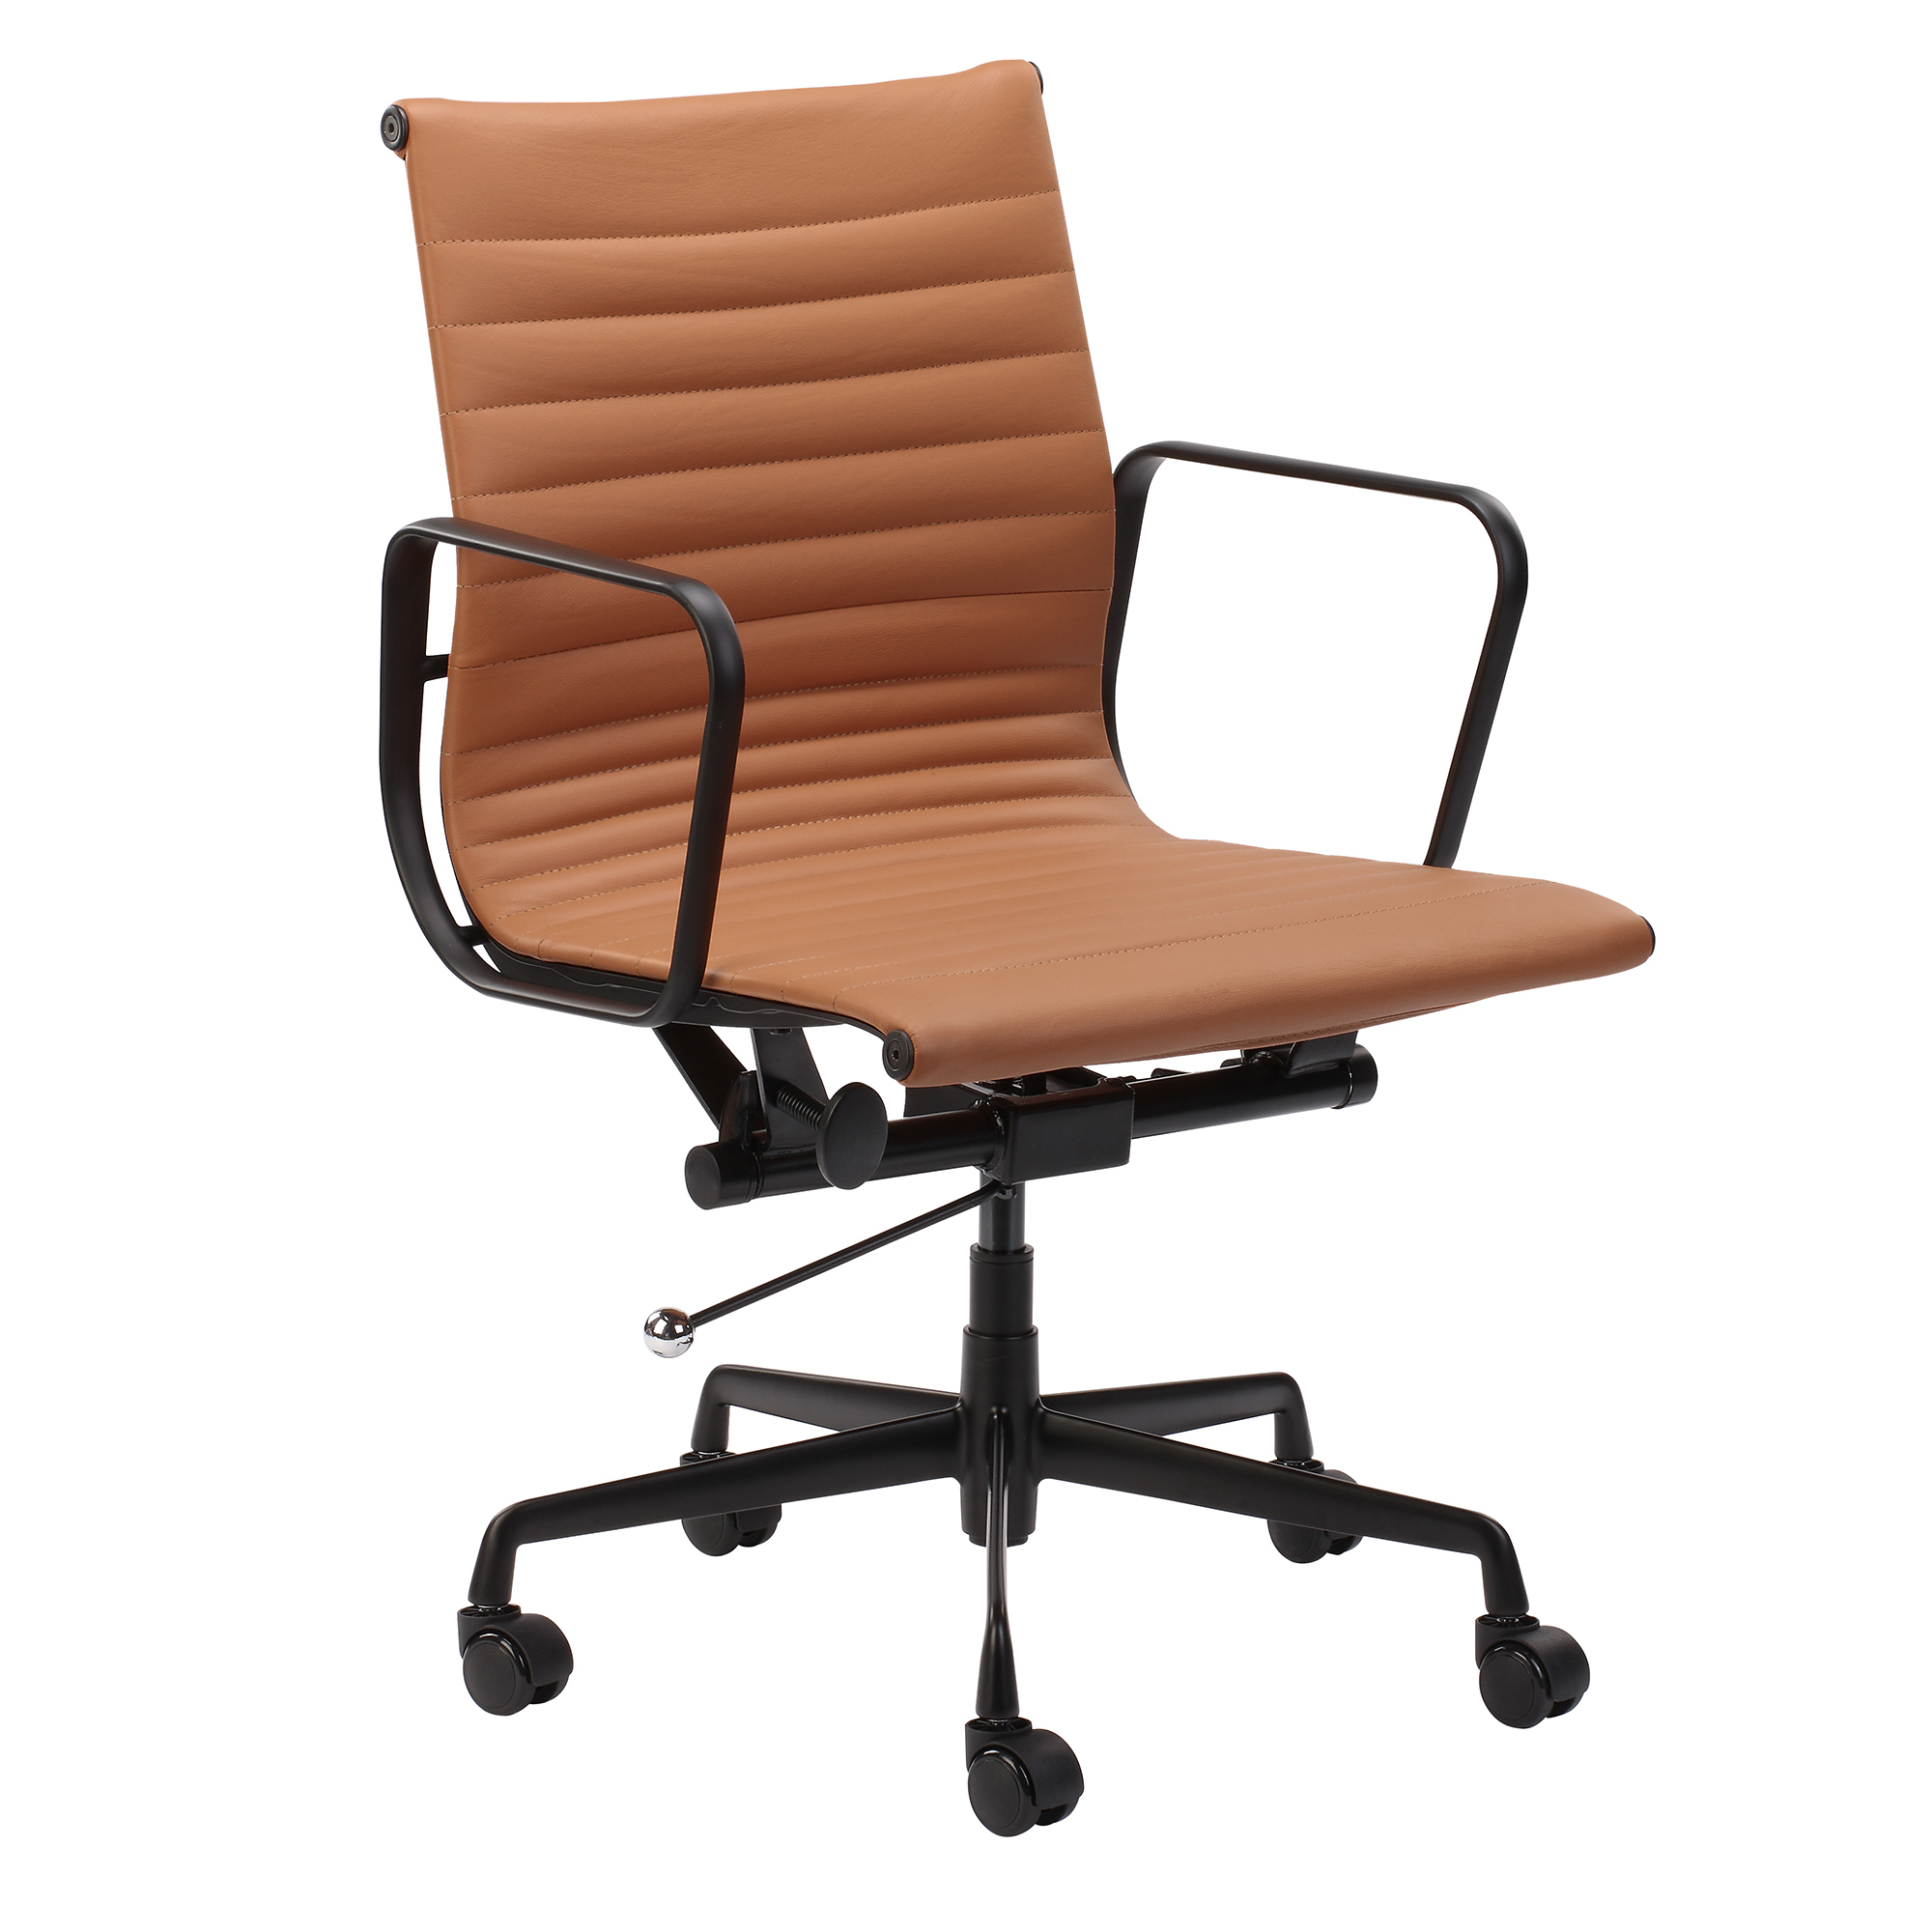 Stealth Executive Boardroom Chair (Tan/Black)